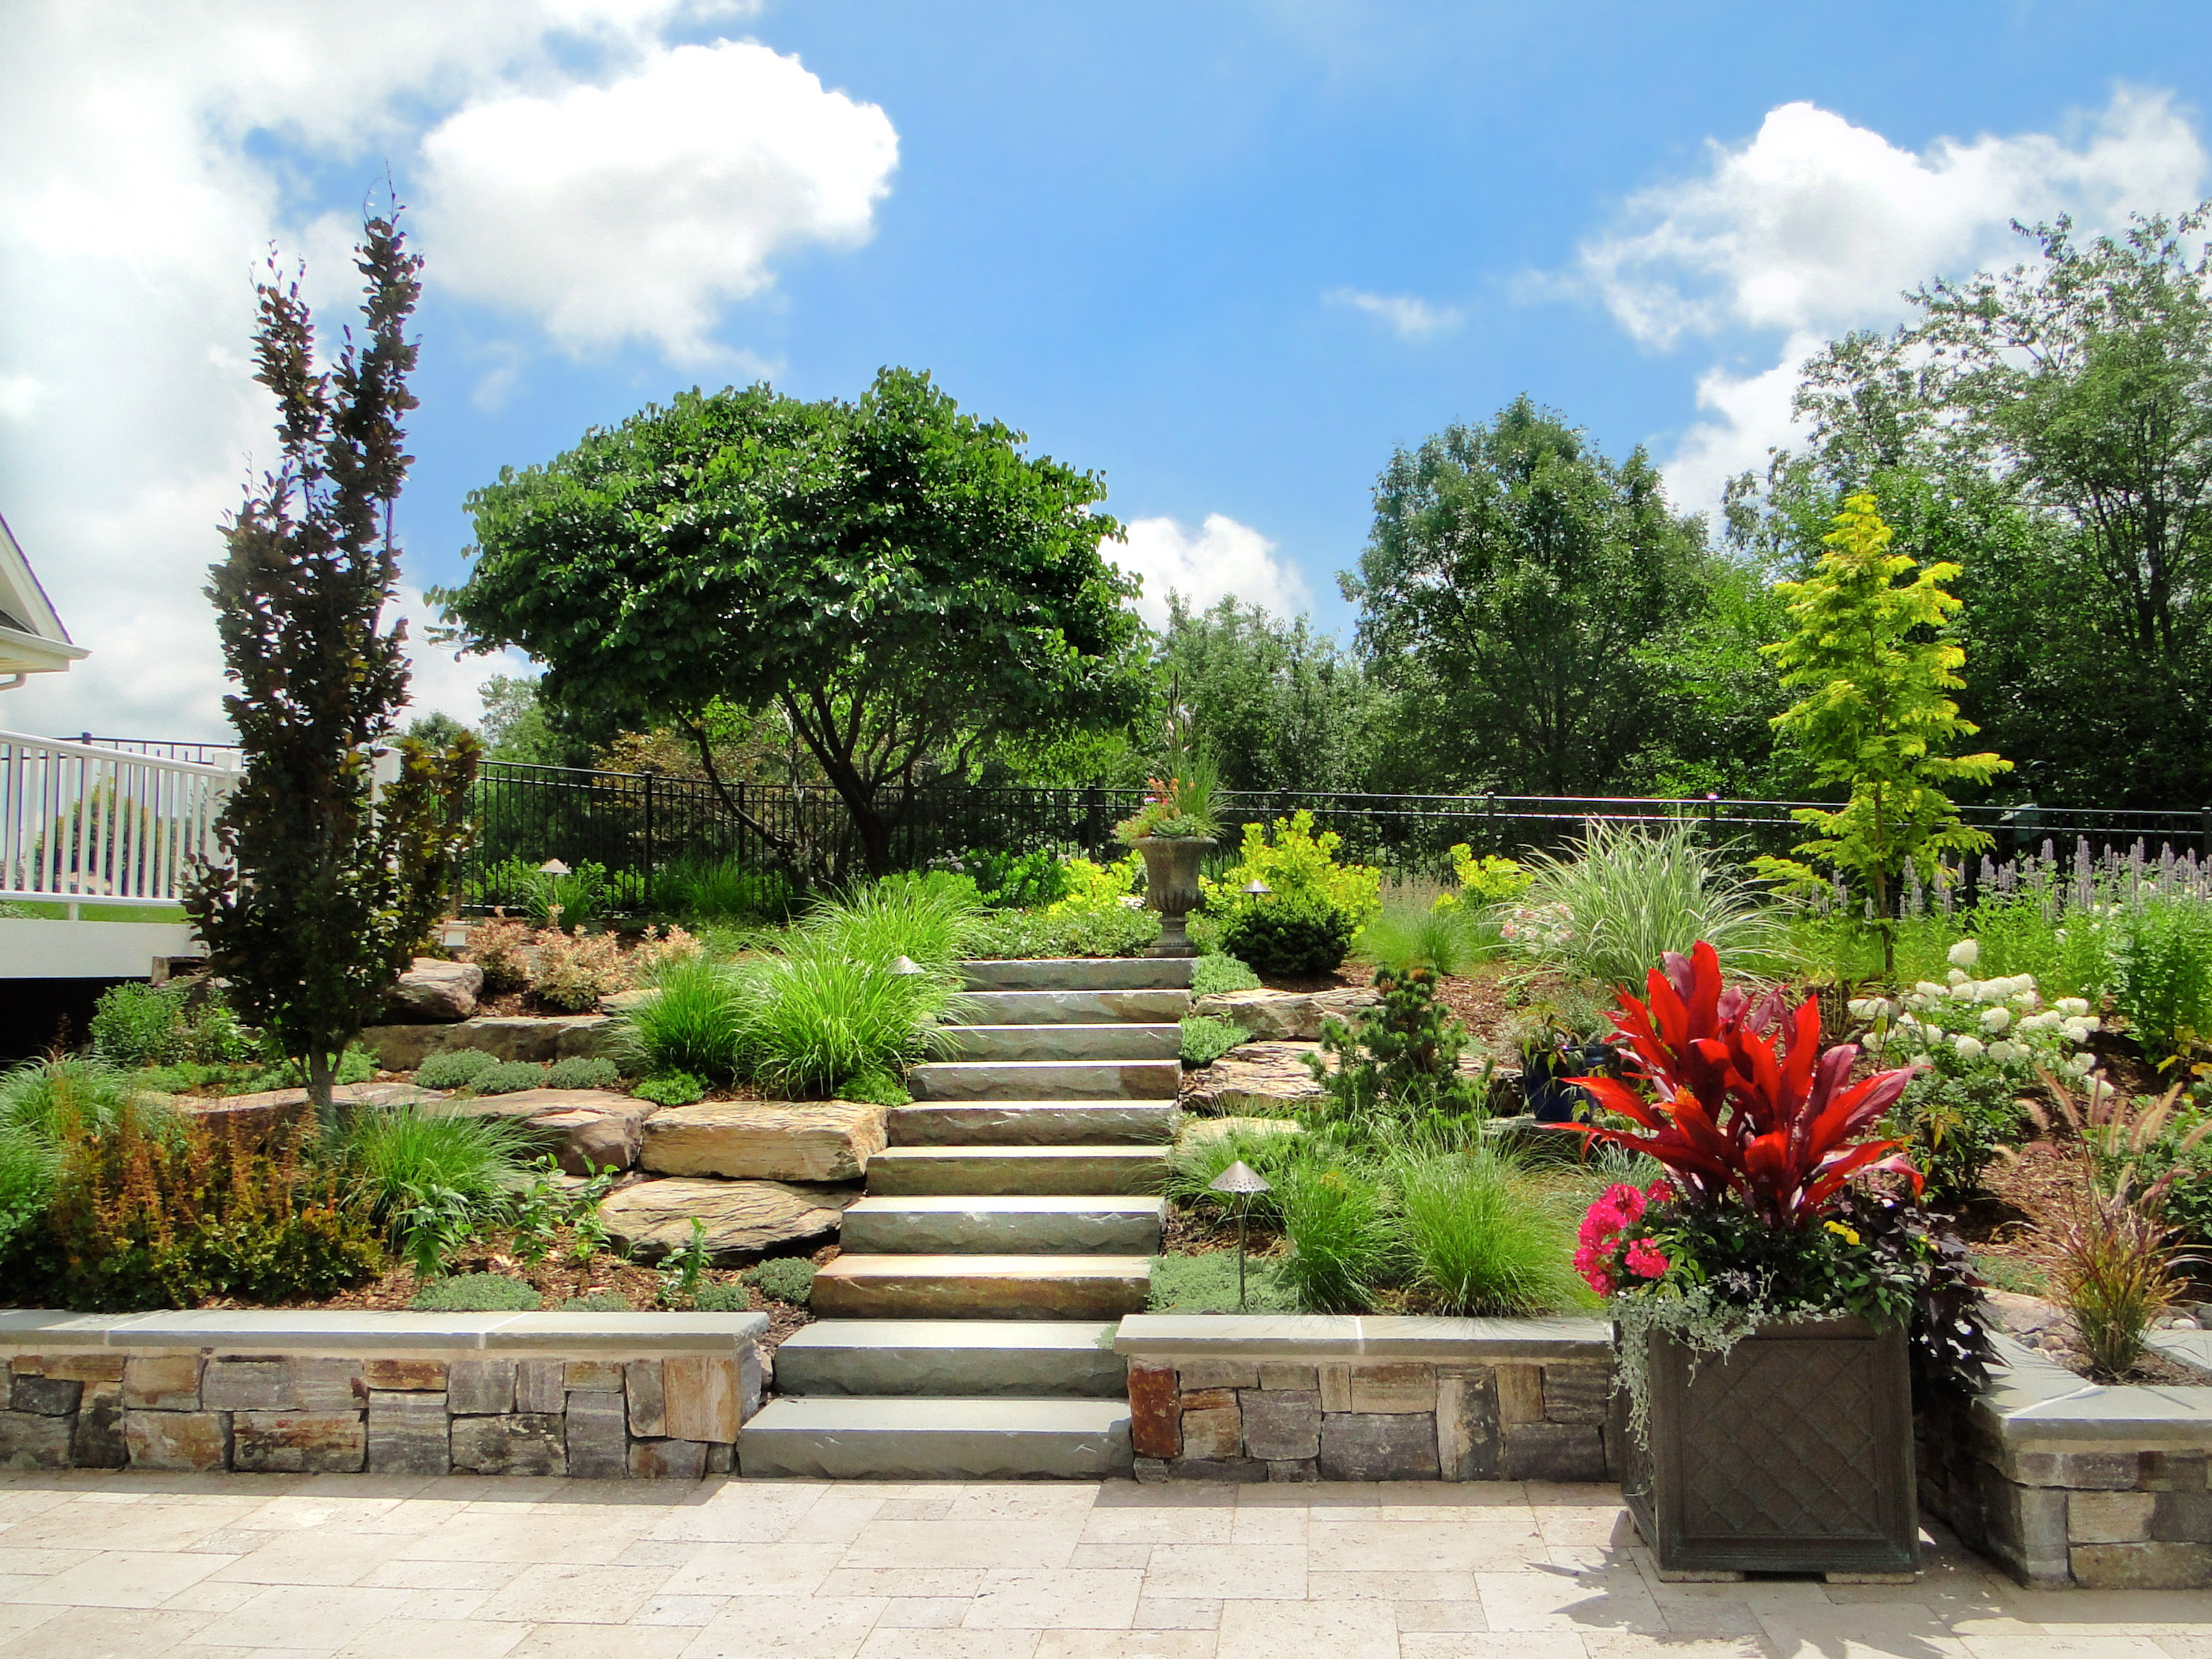 Our designs combine a diverse mix of native and hybridized plants with natural stonework.